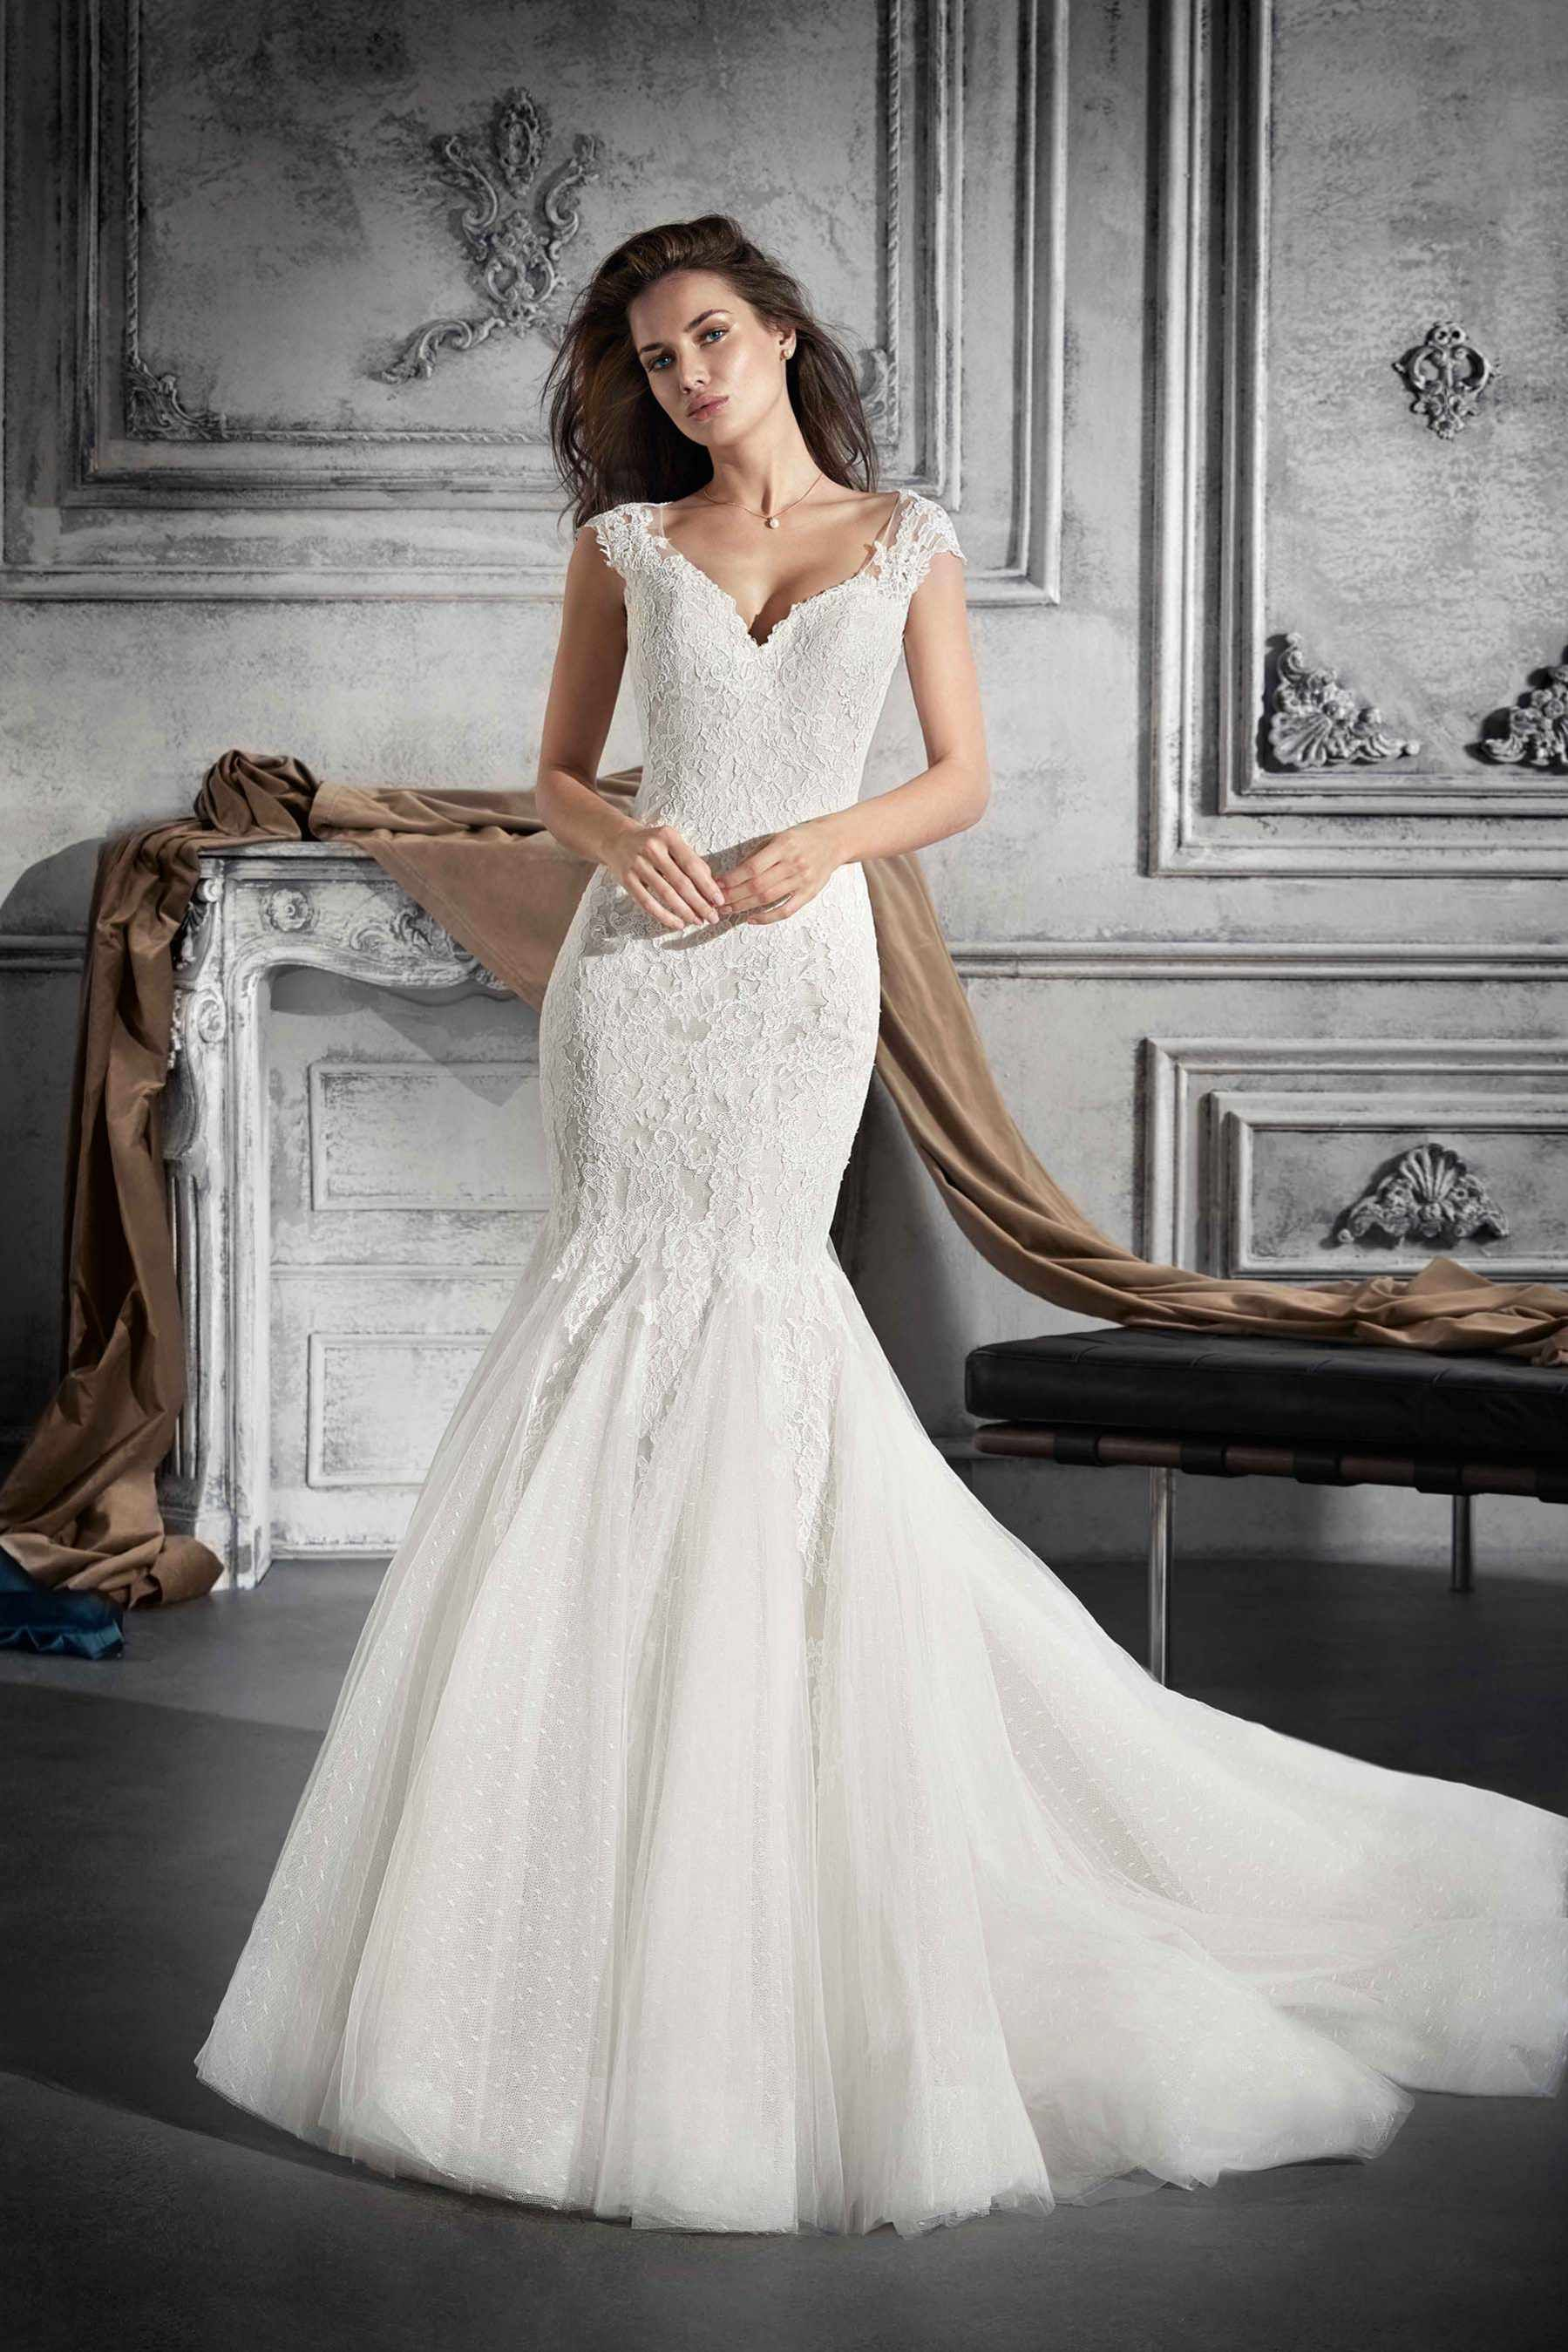 Demetrios Wedding Dress Style 748 Fabulous In Its Understated Charm This Mermaid Look Wedding Dresses Wedding Dresses Sydney Wedding Dresses Princess Ballgown